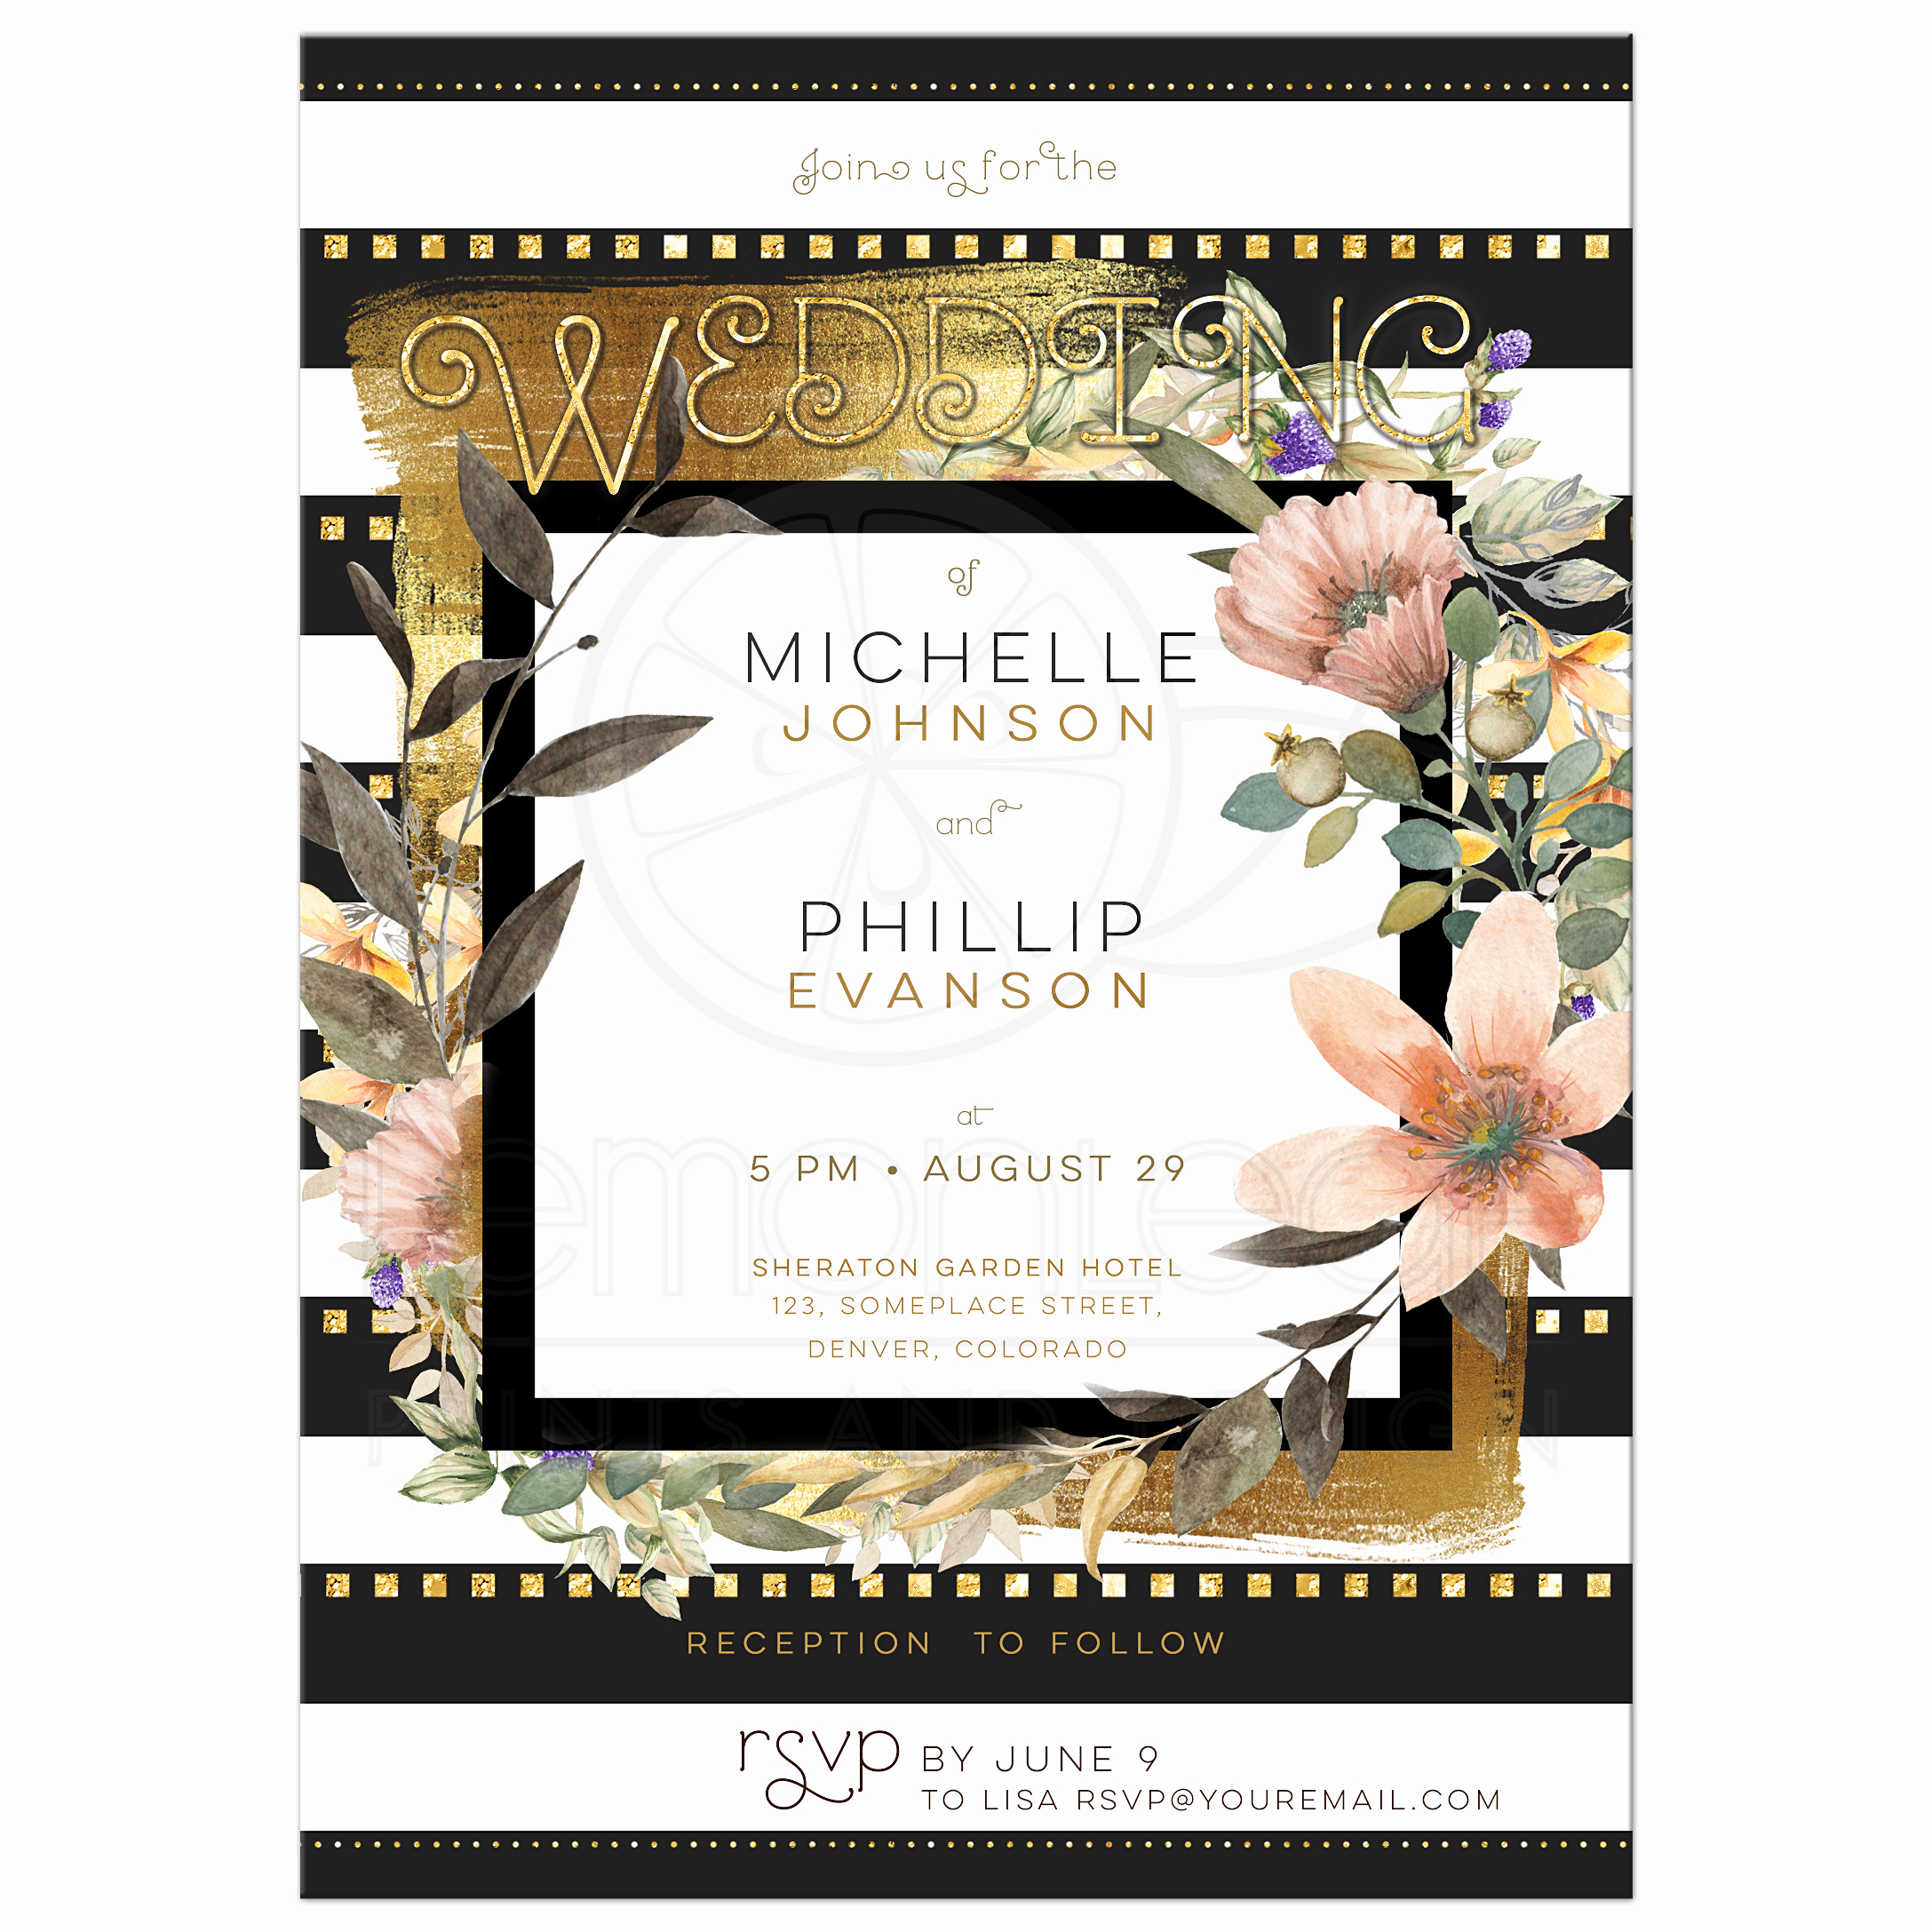 Black and White Invitations Luxury Modern Chic Wedding Gold Black White Stripes & Floral Invitation